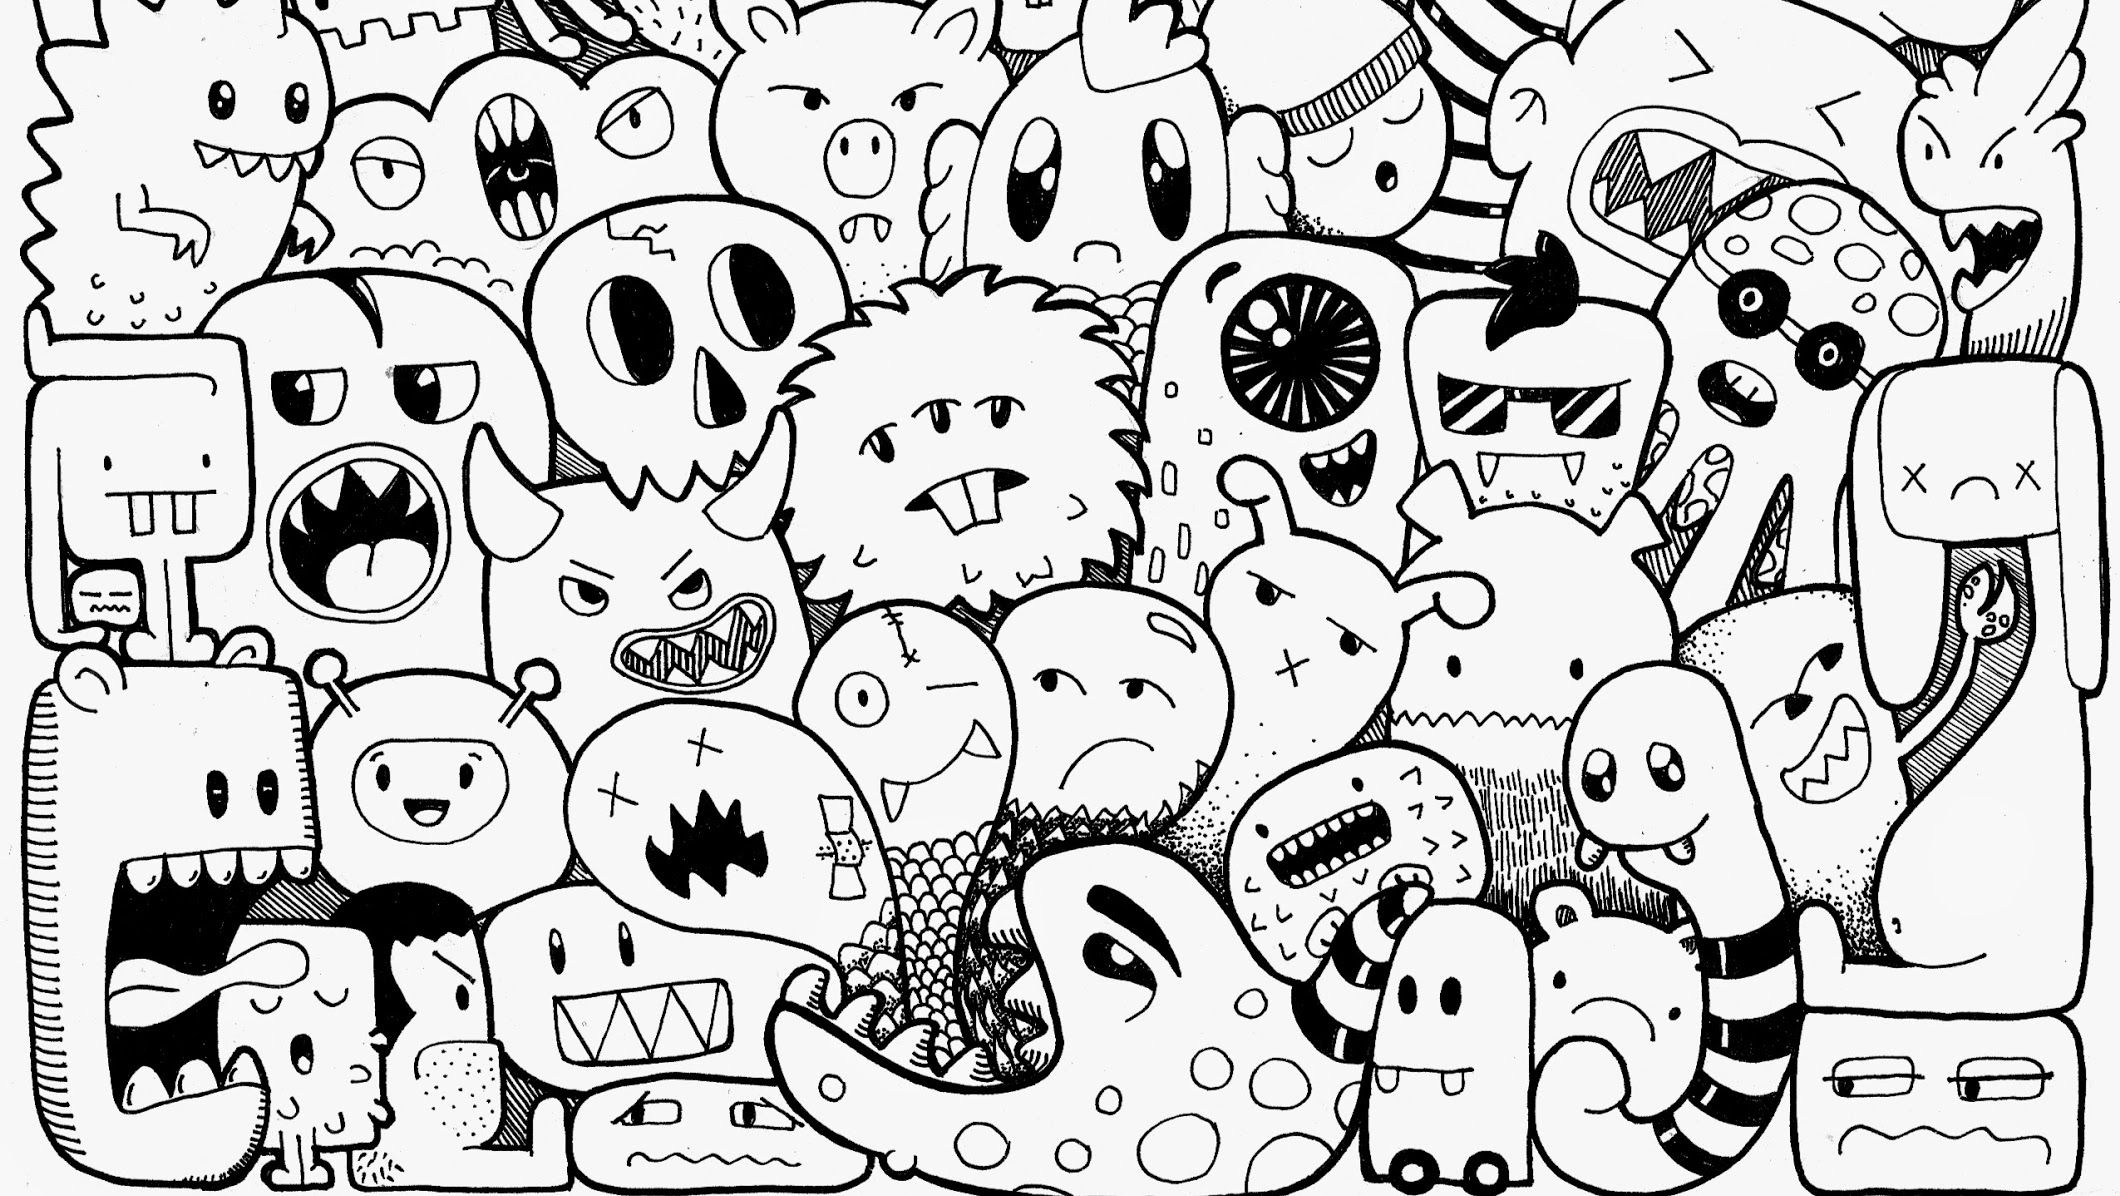 Bunte Galerie Youtube Graffiti Doodles Doodle Monster